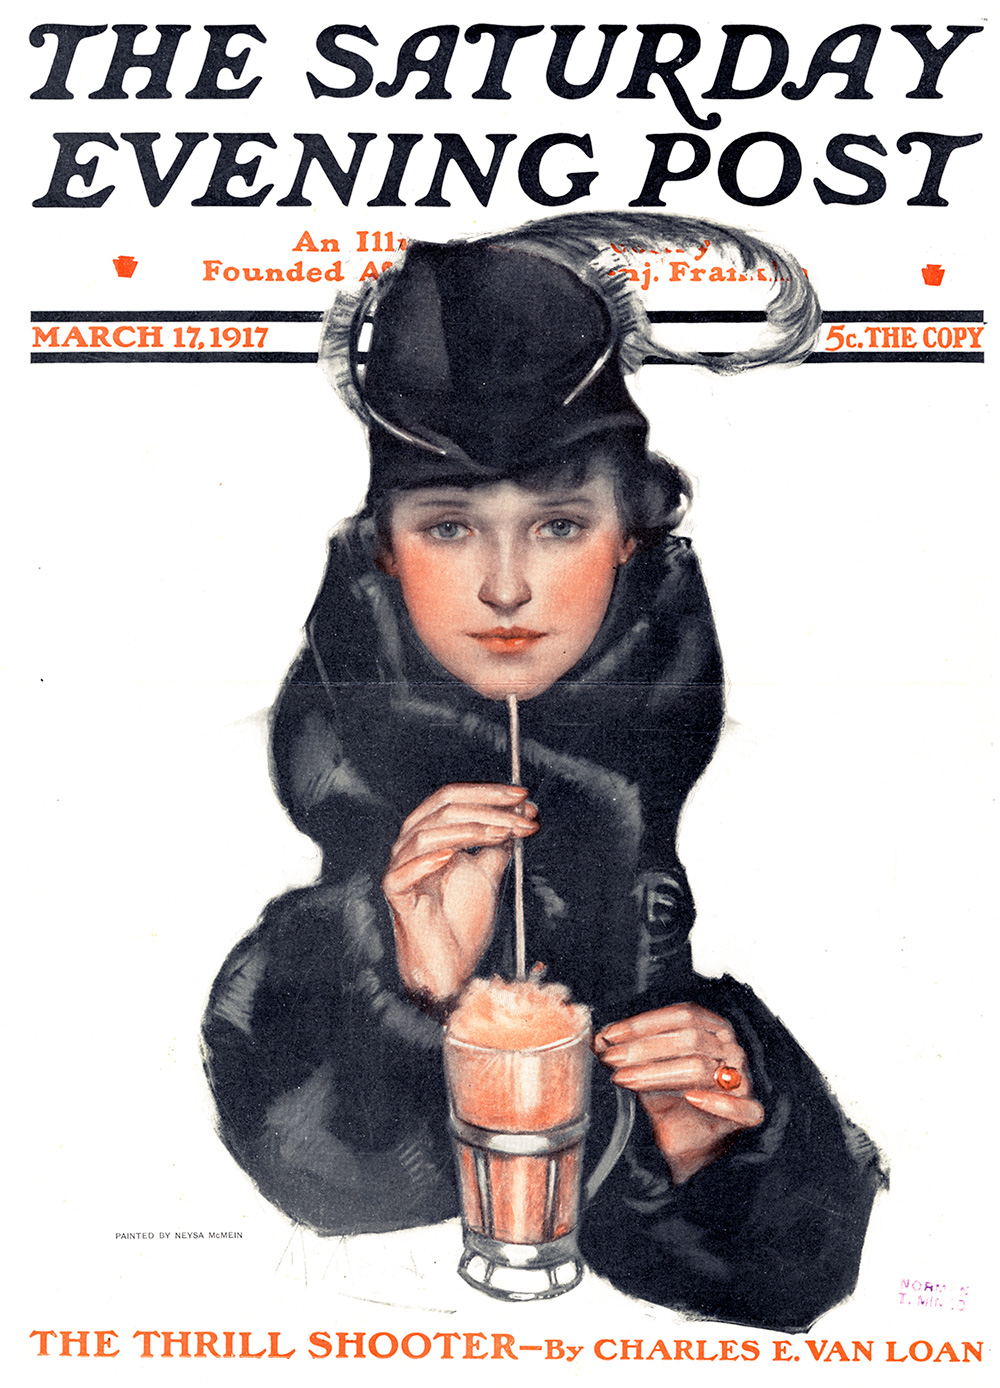 Neysa McMein, Cover Illustration for The Saturday Evening Post. March 17, 1917.